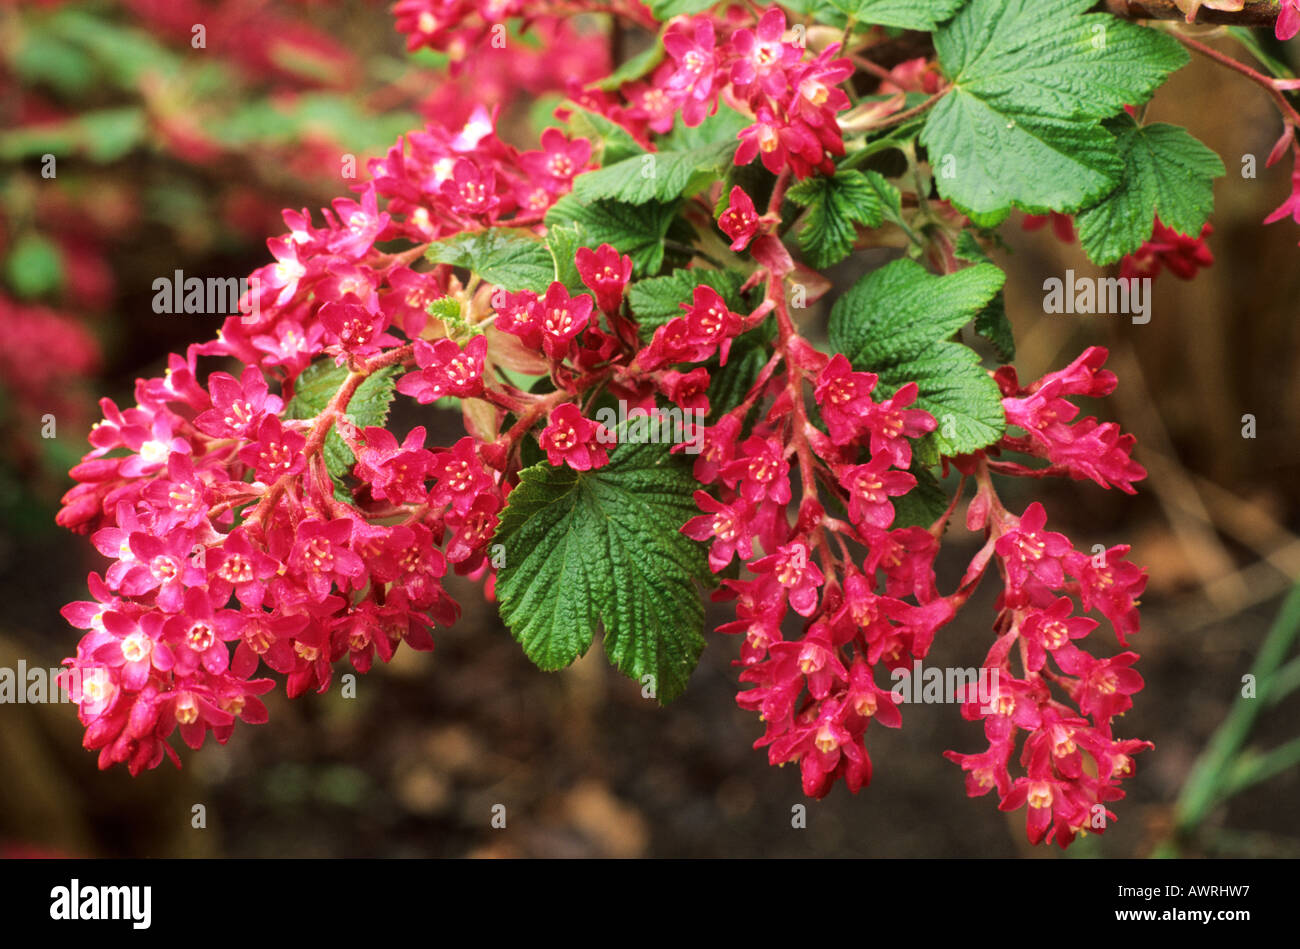 ribes sanguineum 39 king edward vii 39 flowering currant bush red stock photo royalty free image. Black Bedroom Furniture Sets. Home Design Ideas